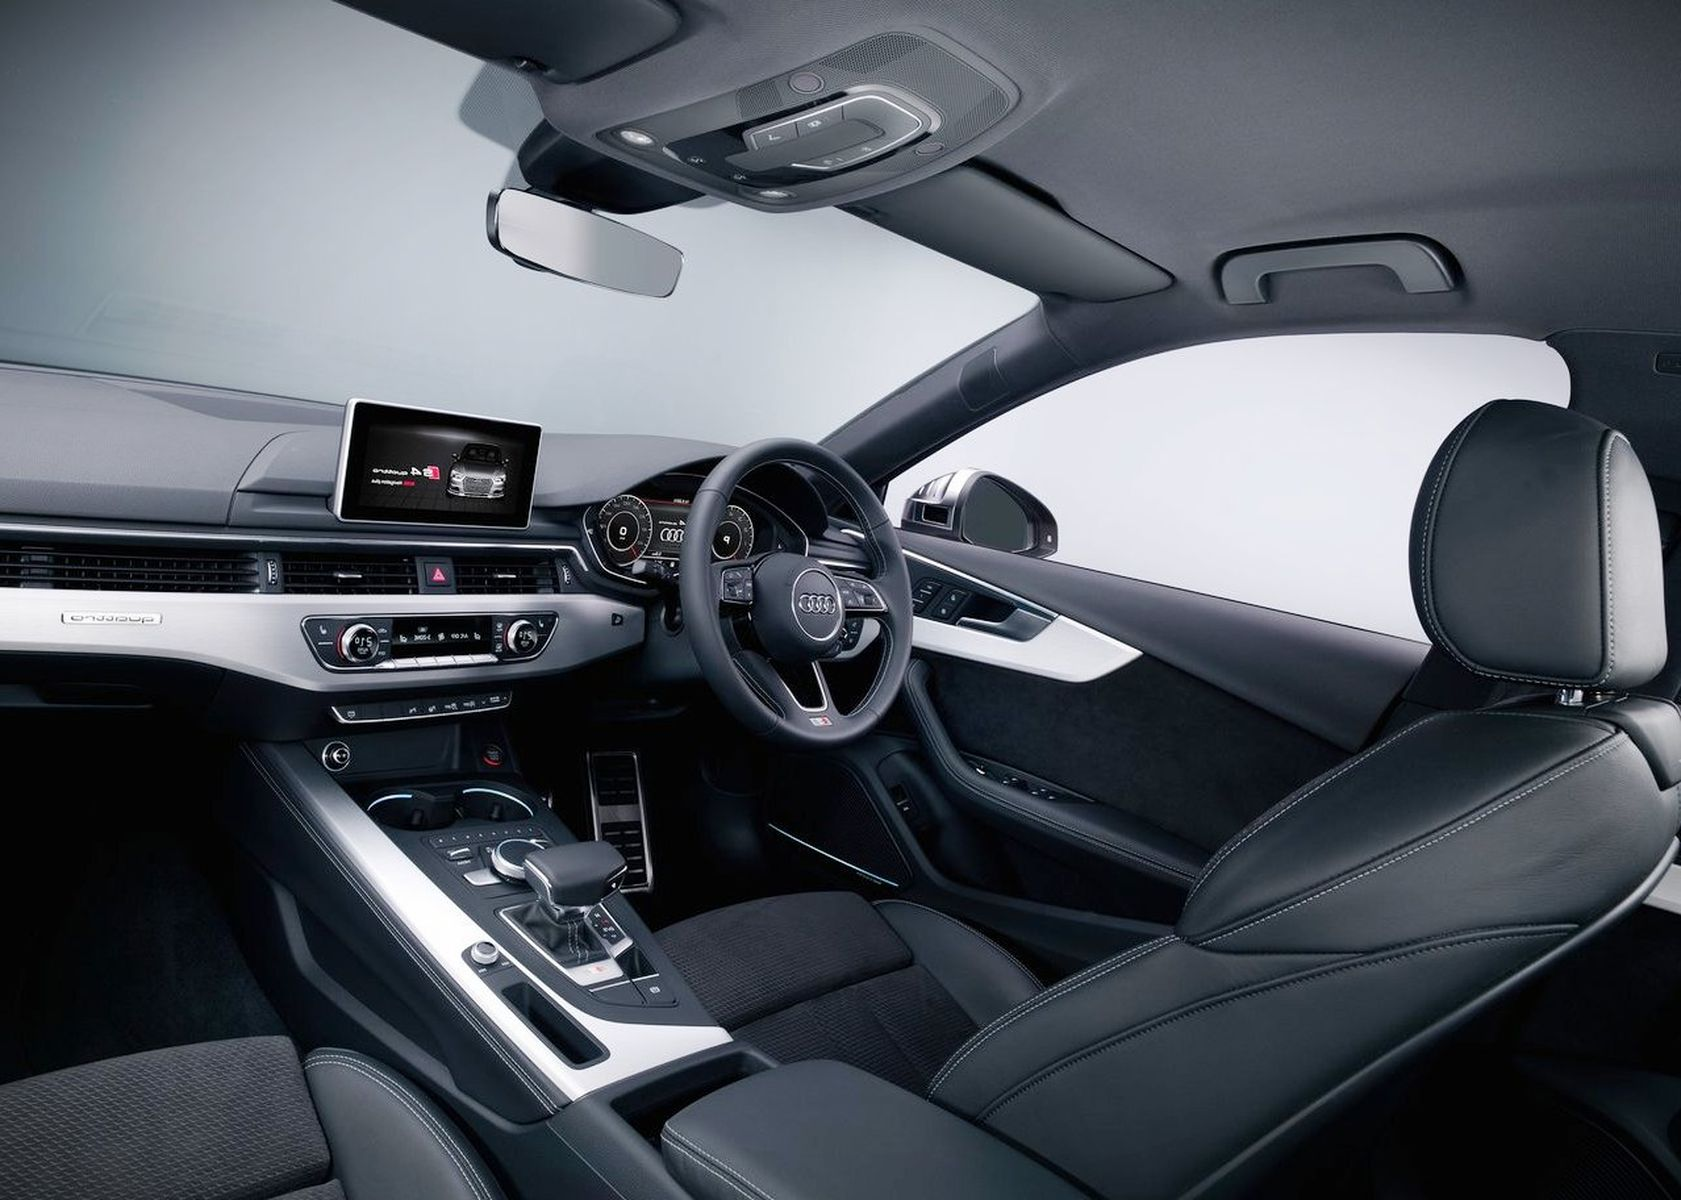 2018 Audi S4 interior photos